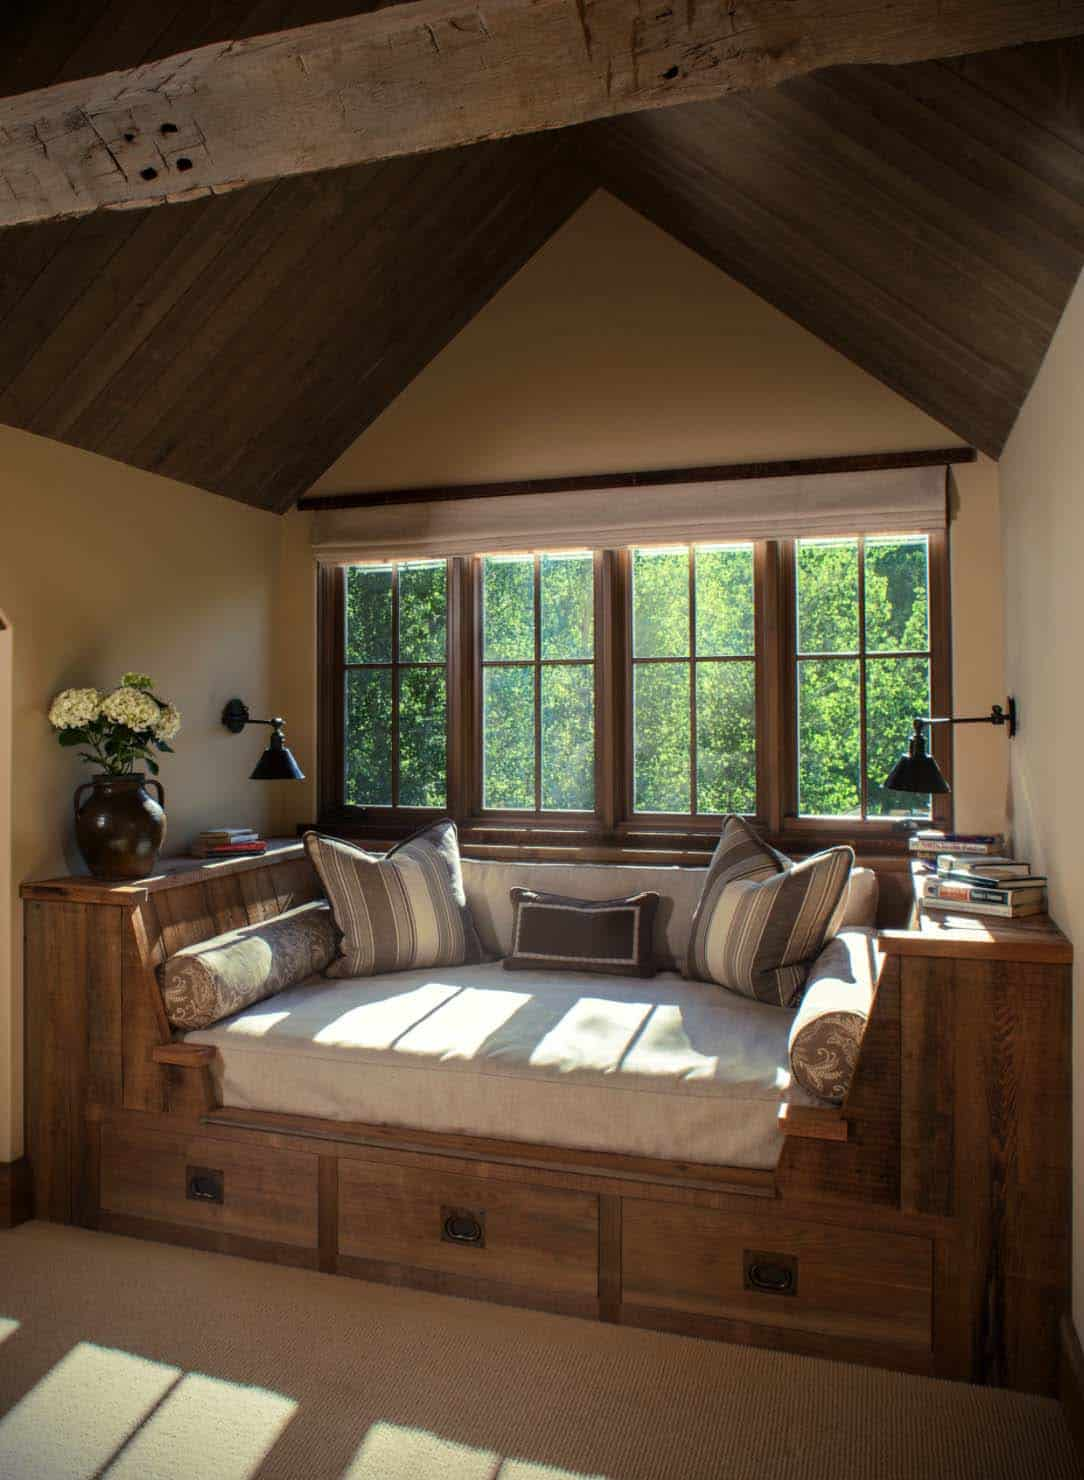 Wood River Valley Chalet-Miller Architects-06-1 Kindesign